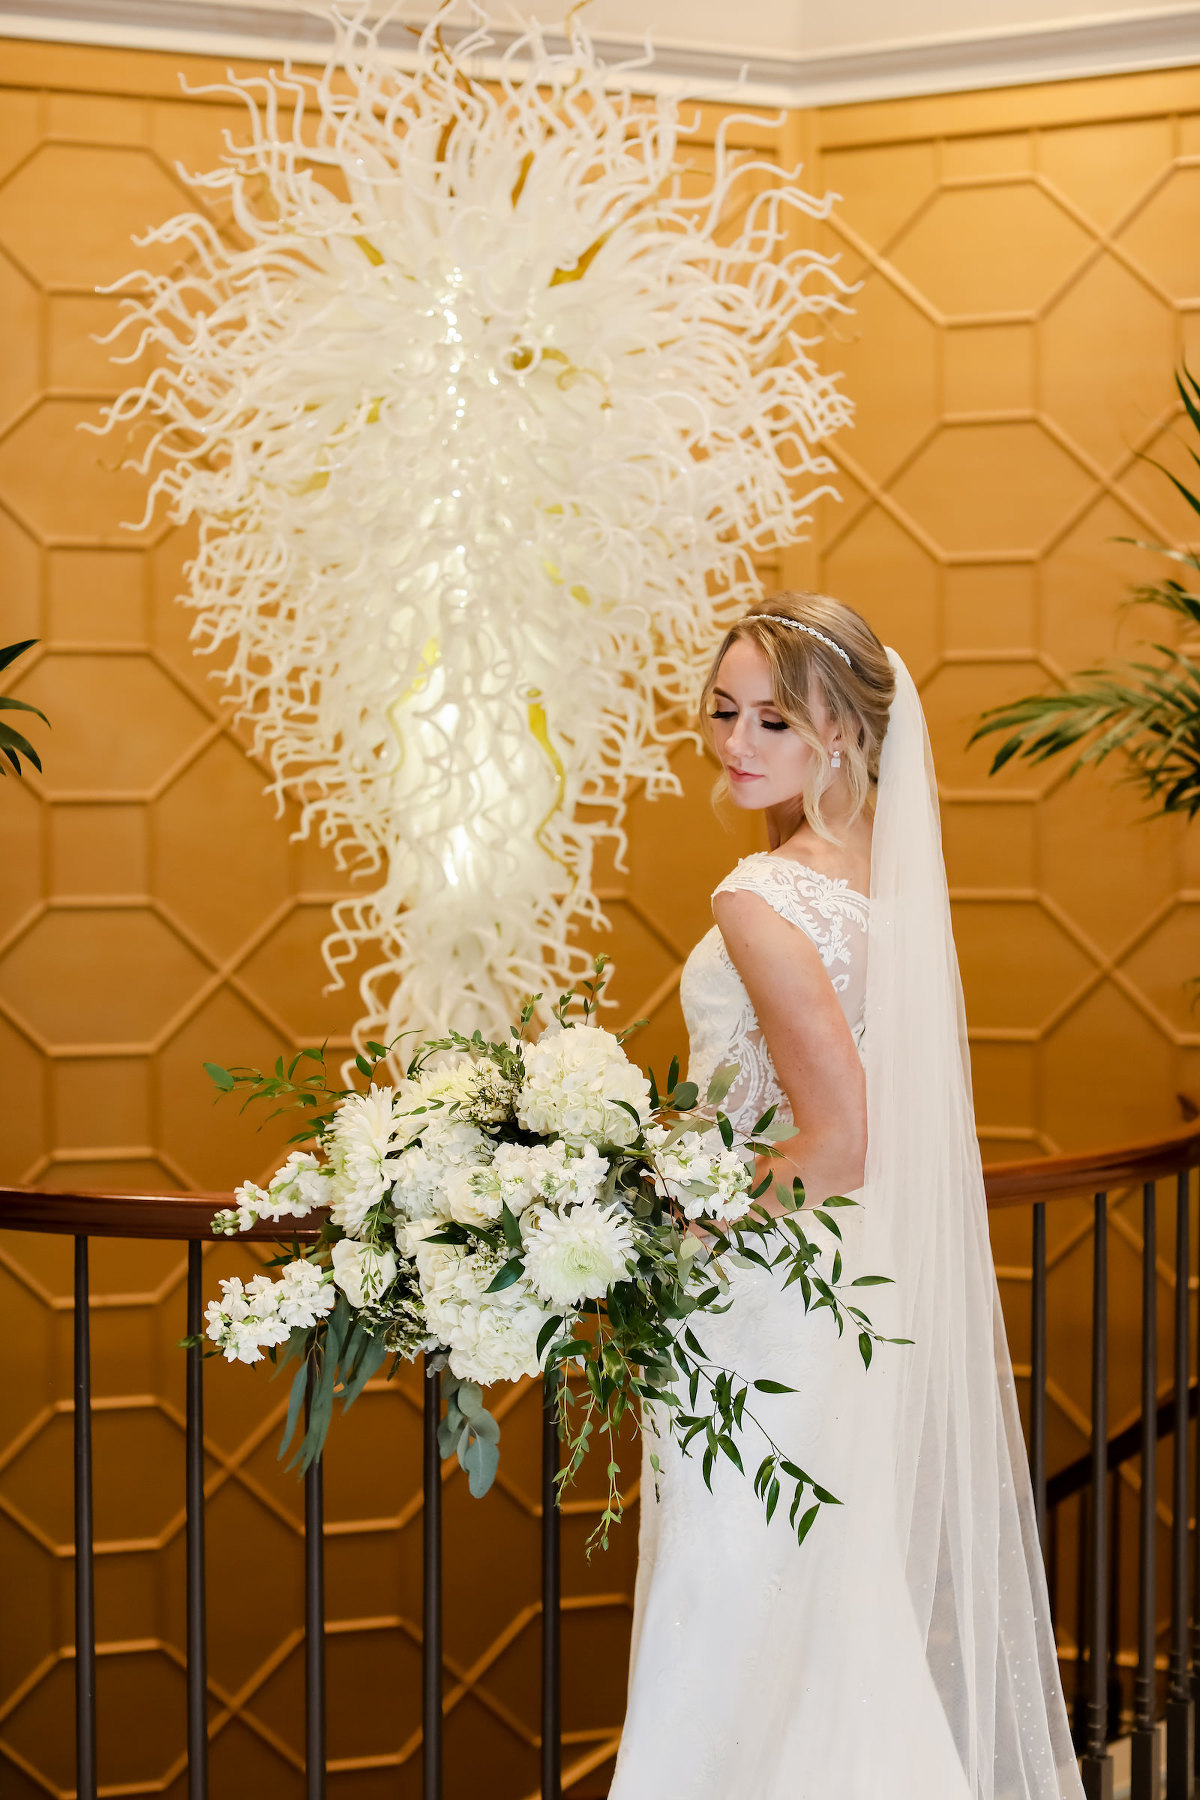 Romantic Traditional Bride with Full Length Veil Holding White and Greenery Floral Lush Bouquet | Wedding Venue The Tampa Club | Wedding Hair and Makeup Femme Akoi Beauty Studio | Wedding Dress Truly Forever Bridal | Wedding Photographer Lifelong Photography Studio | Styled Shoot